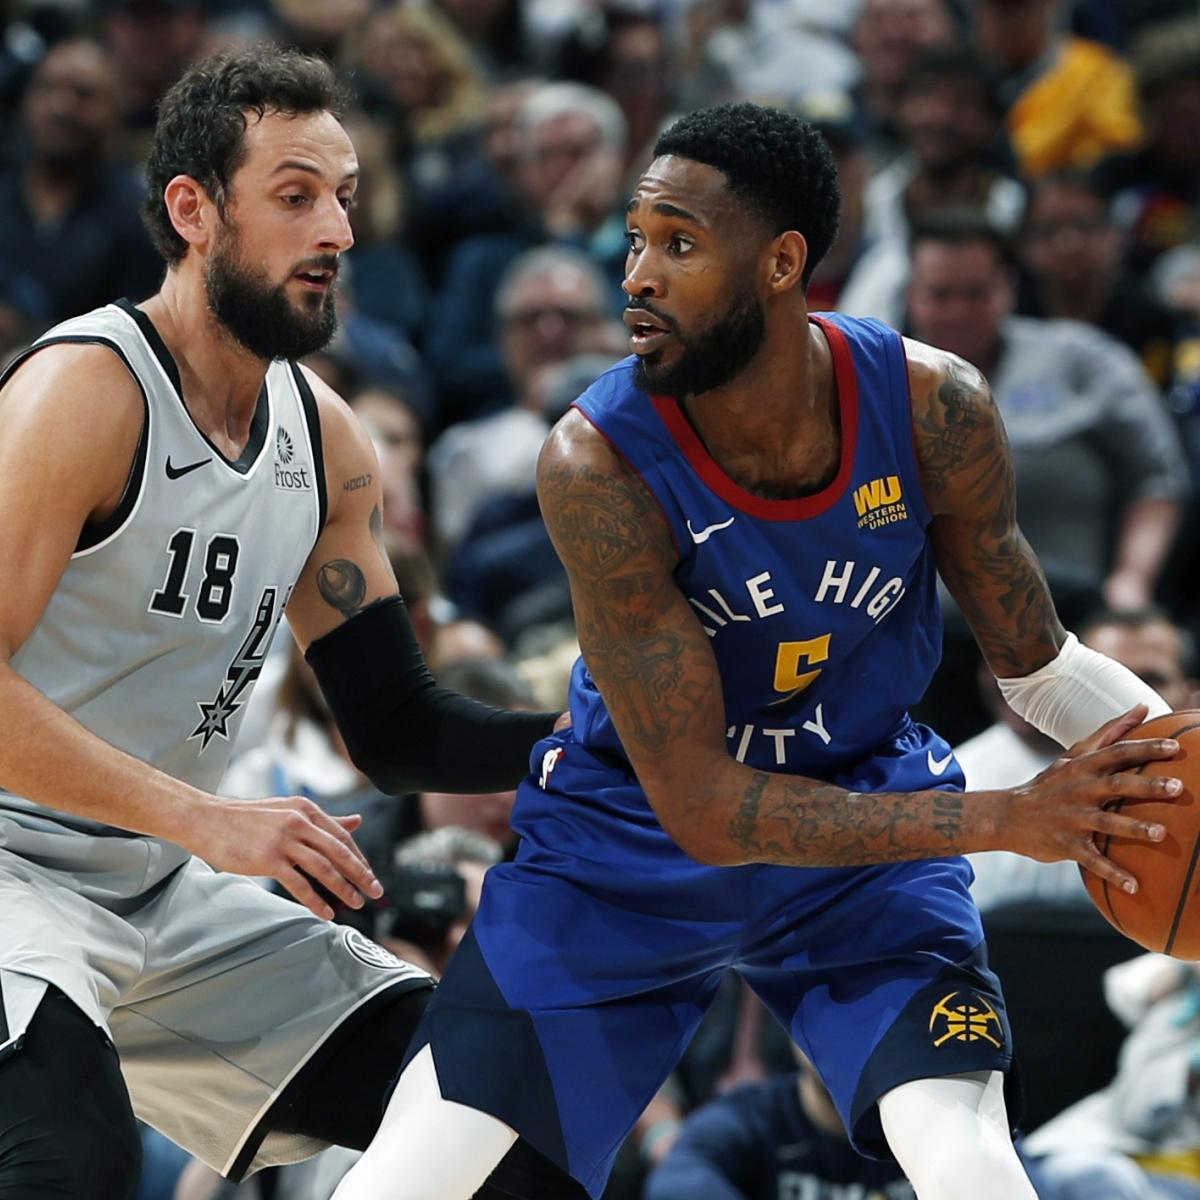 Nuggets Clippers Highlights: NBA Playoff Schedule 2019: TV, Live-Stream Guide For